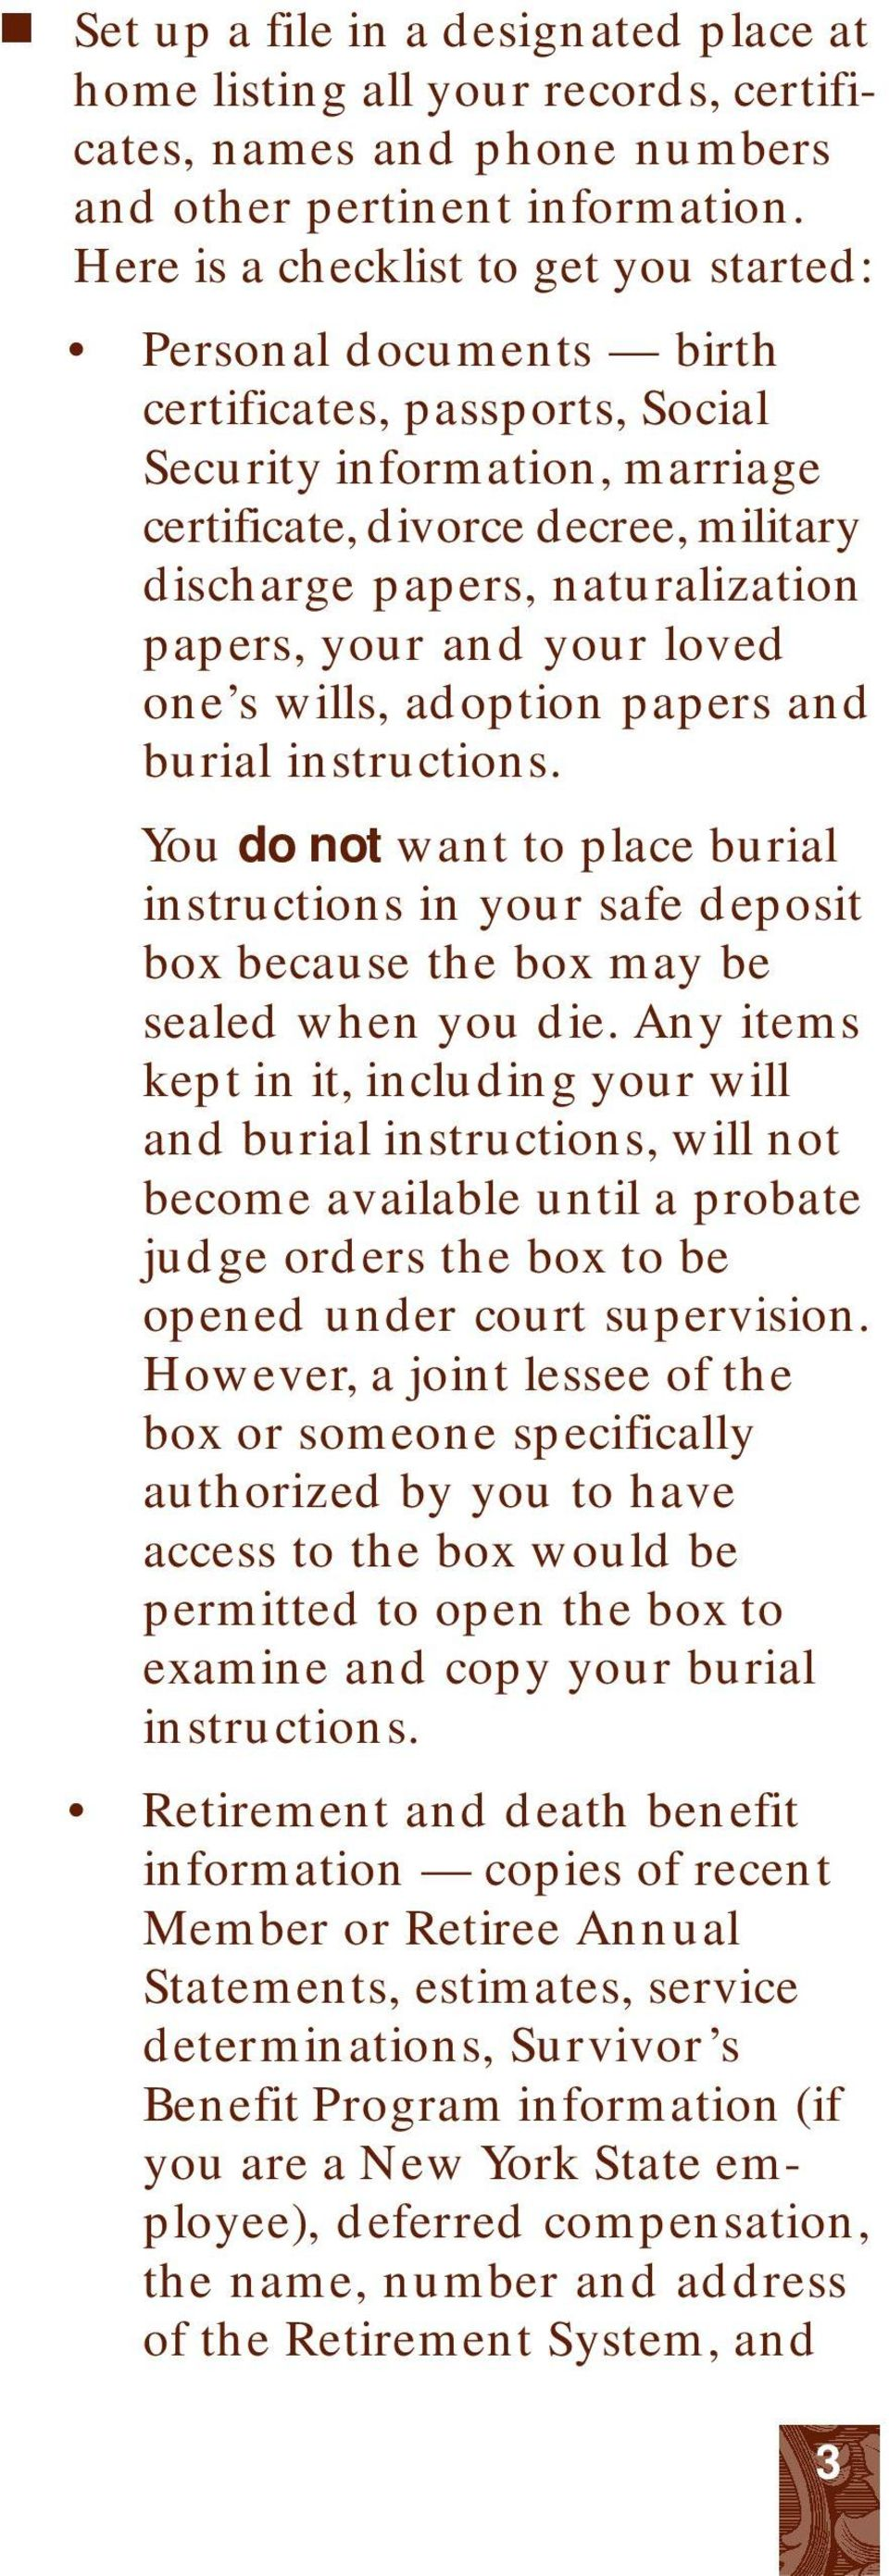 papers, your and your loved one s wills, adoption papers and burial instructions. You do not want to place burial instructions in your safe deposit box because the box may be sealed when you die.